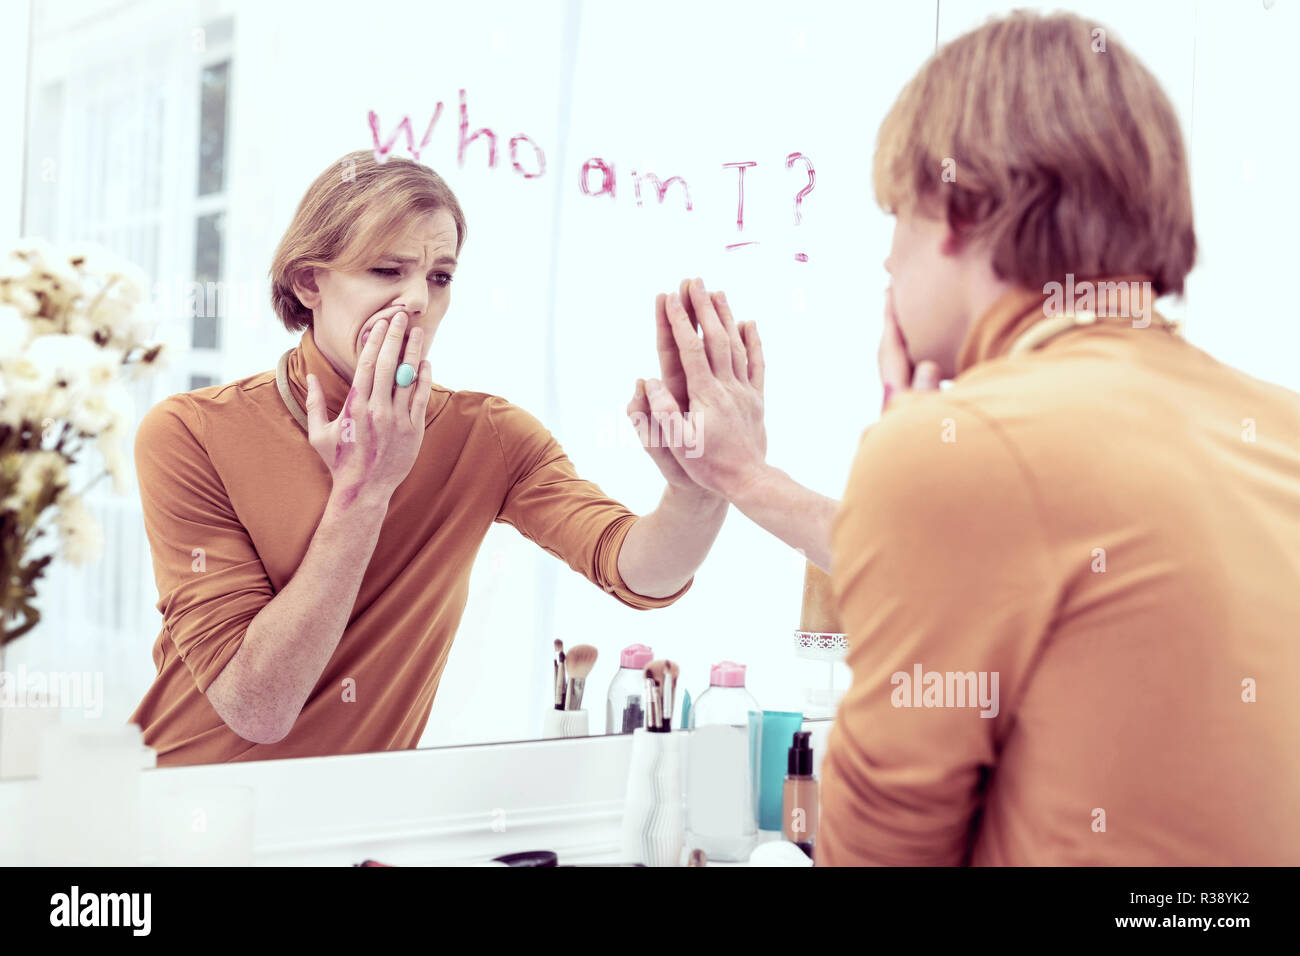 Stressful gender-queer young boy getting confused with his mentality - Stock Image